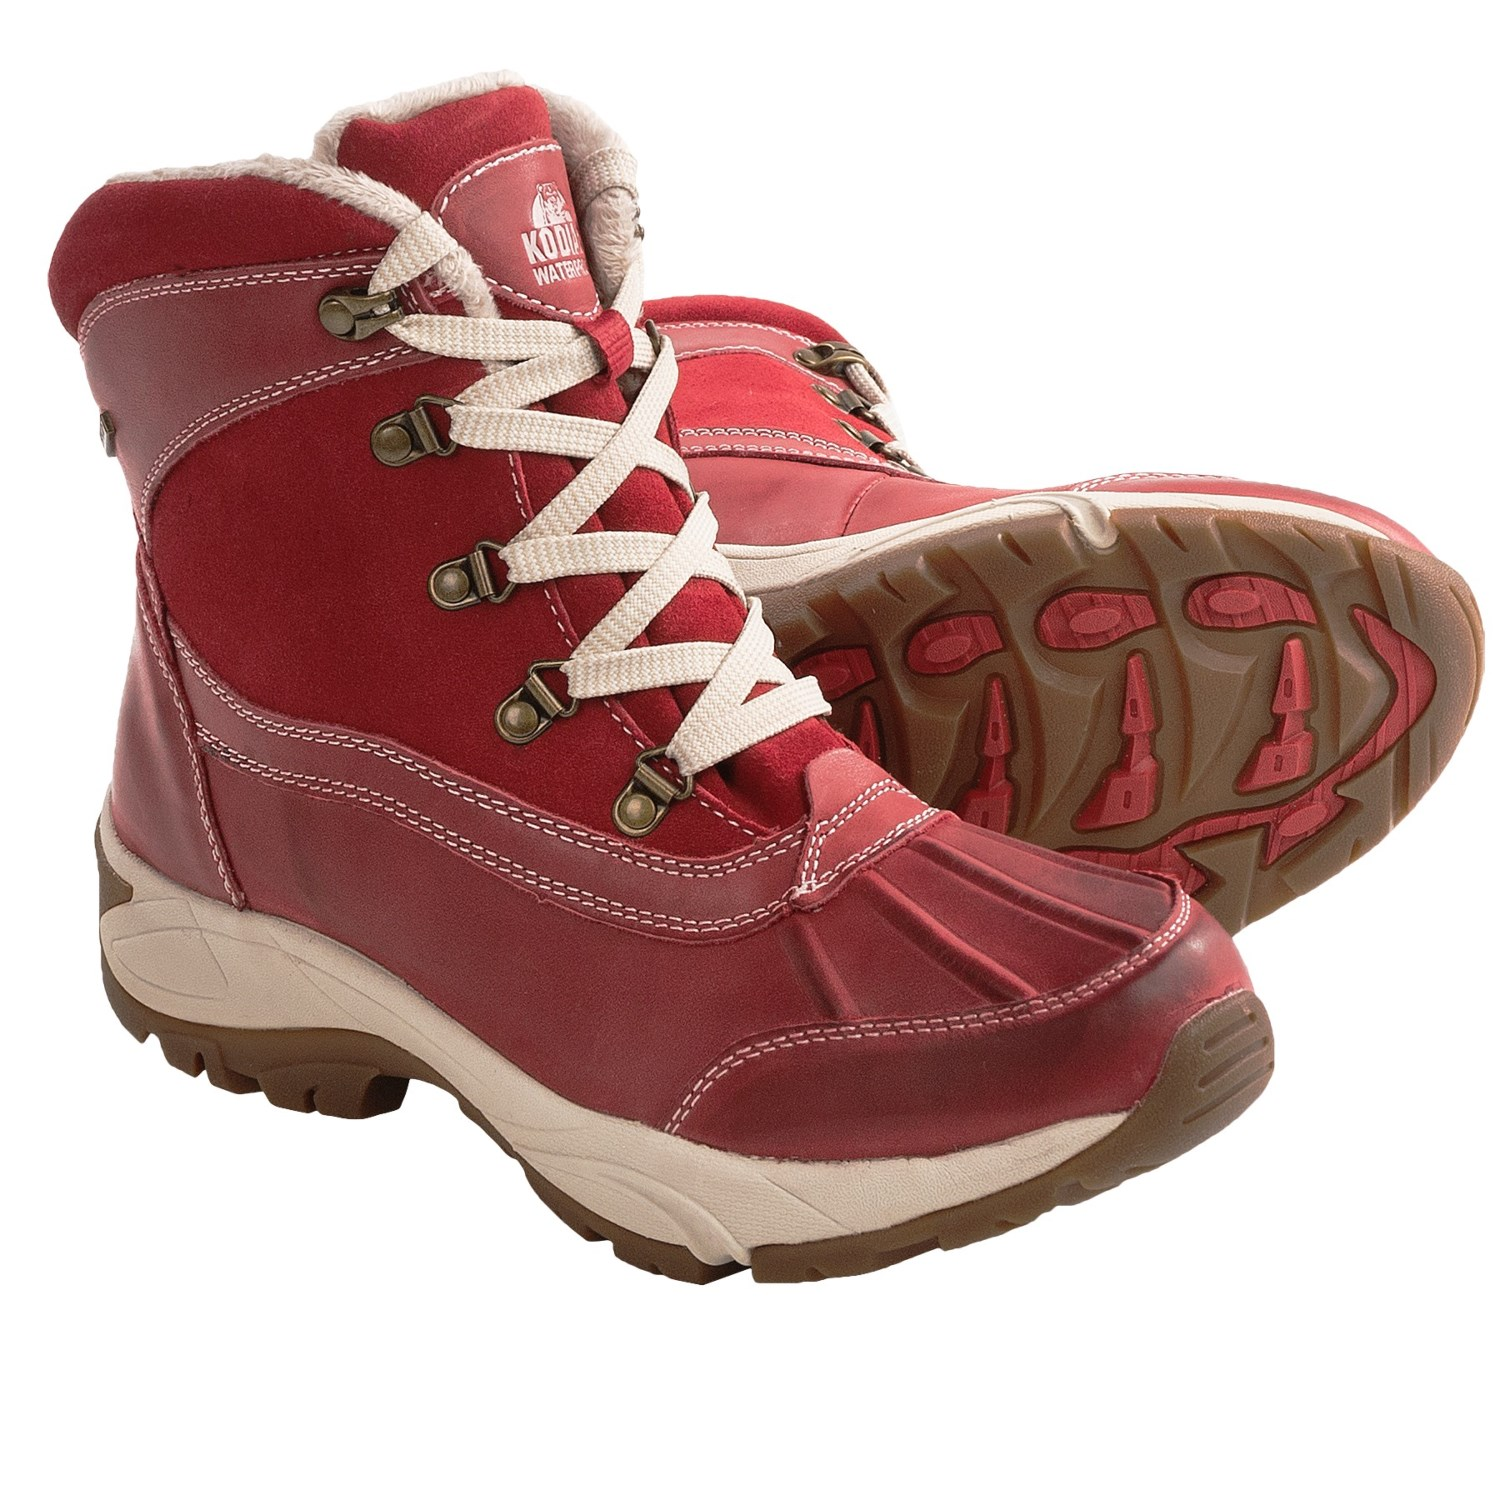 Kodiak renee snow boots waterproof insulated for women save 30